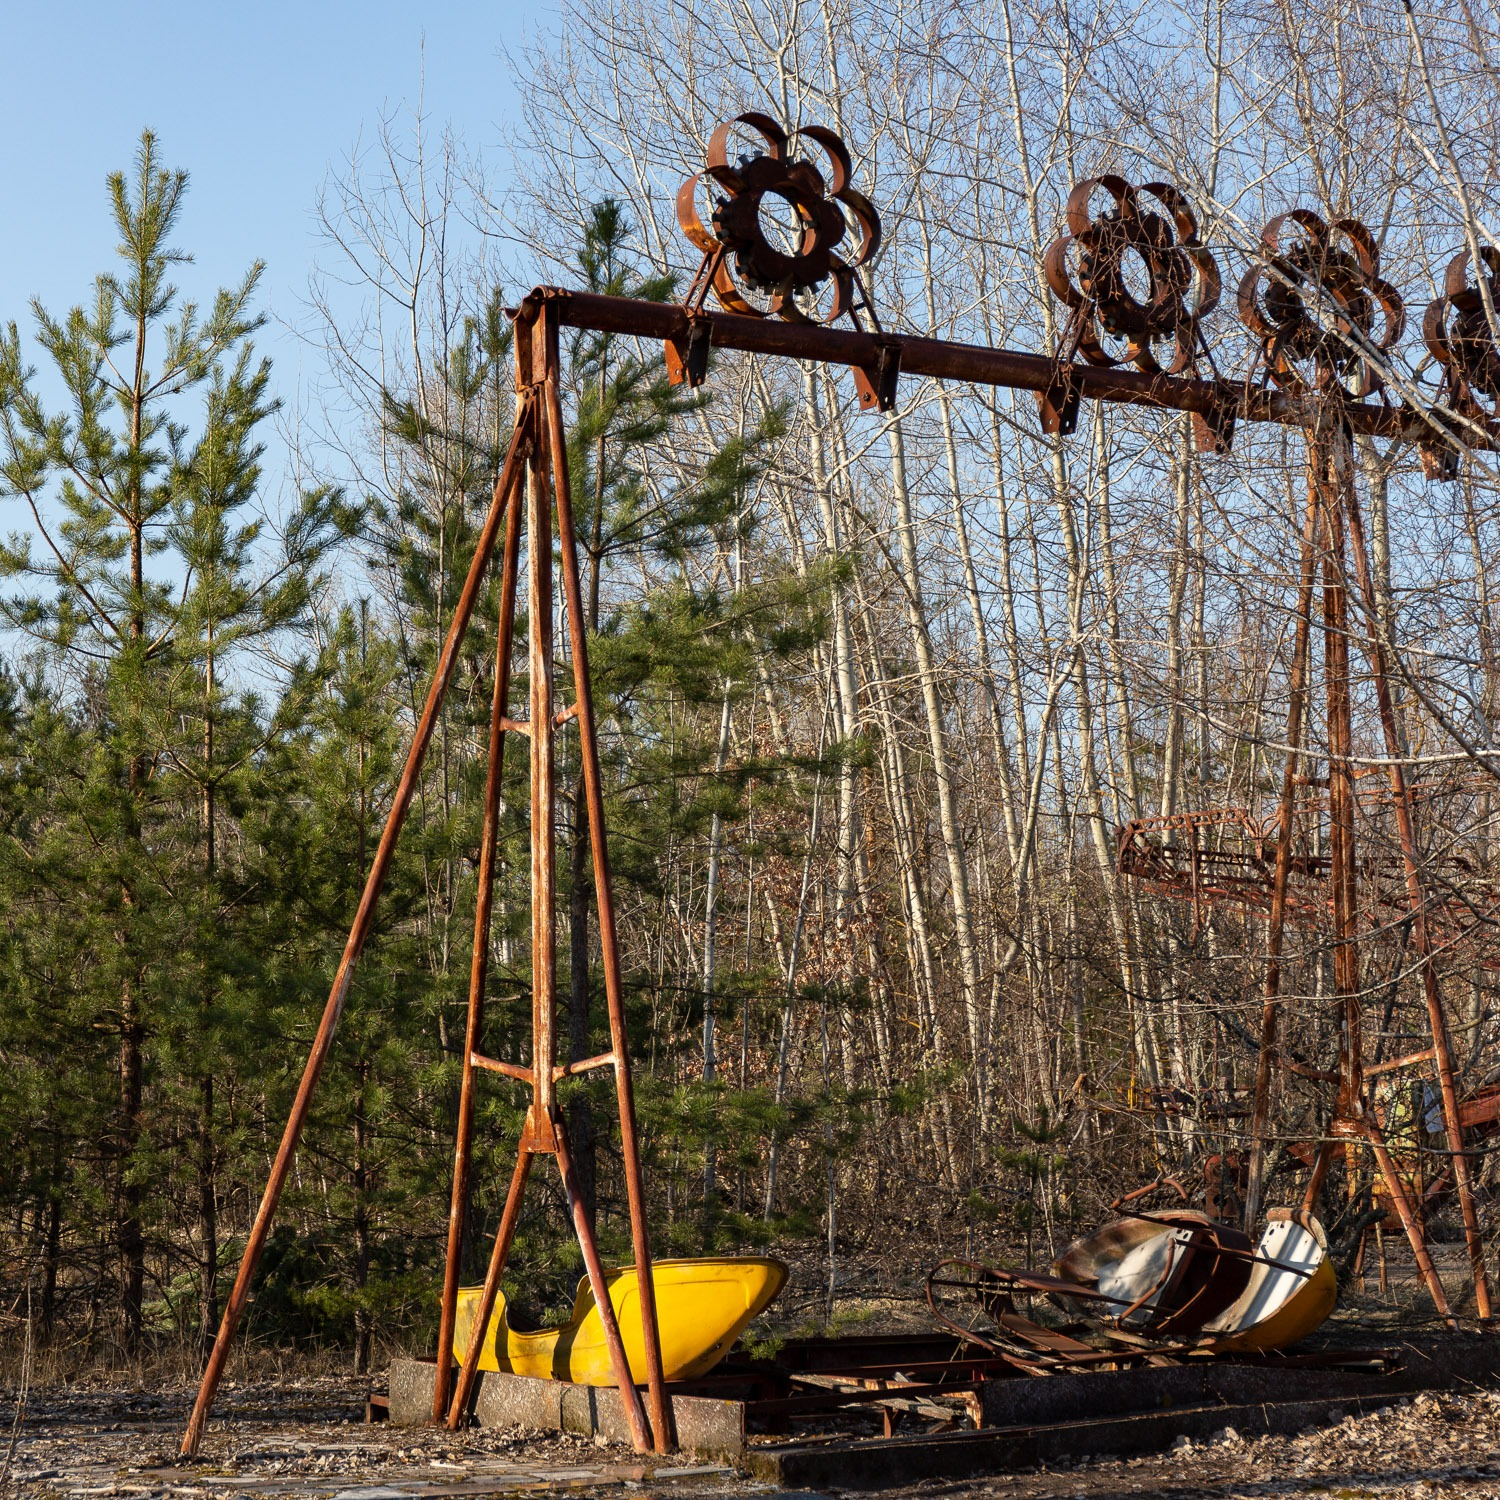 swing boats in abandoned amusement park